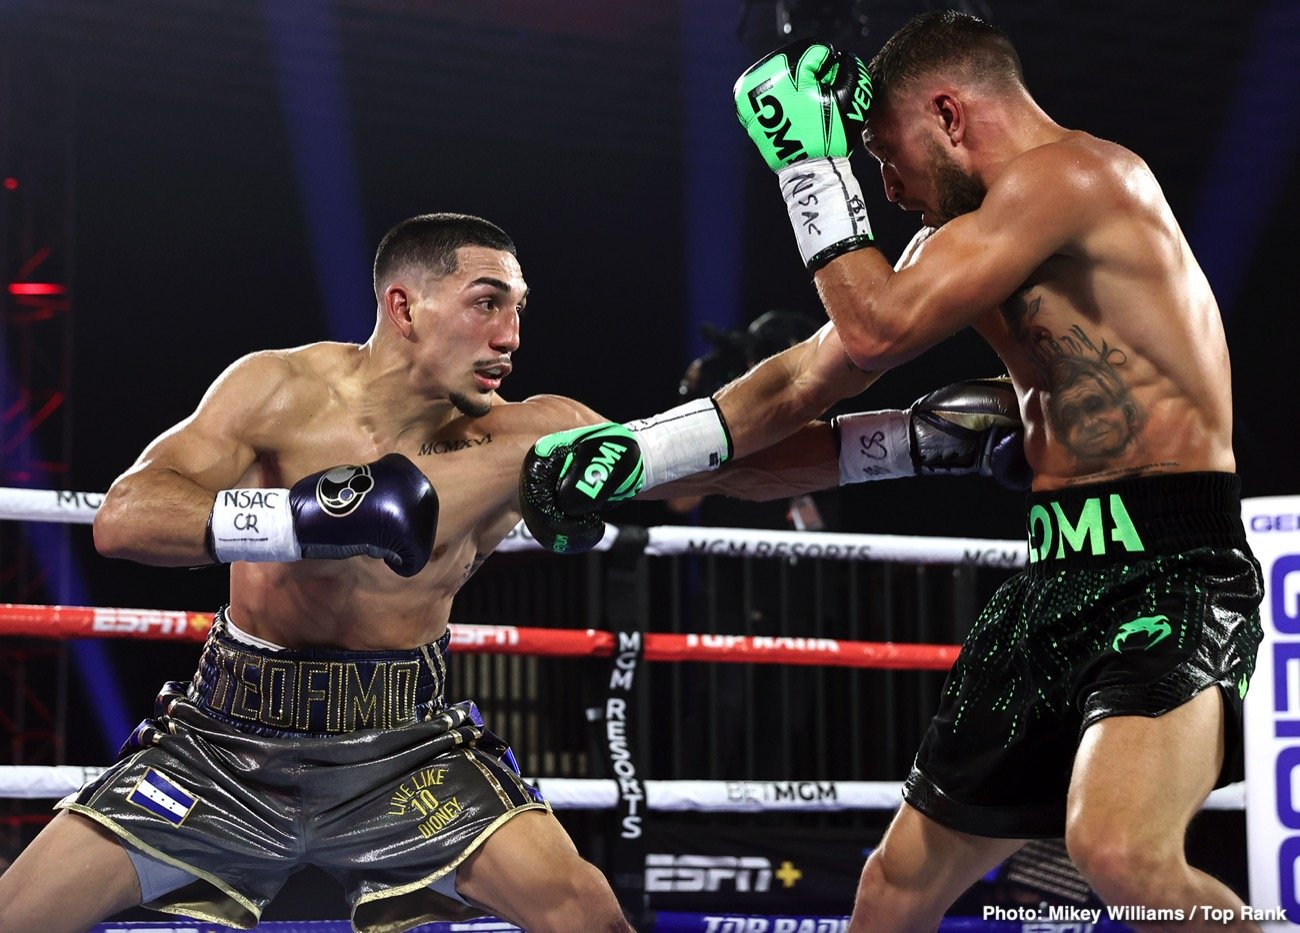 Bob Arum, Devin Haney, Ryan Garcia, Teofimo Lopez, Vasiliy Lomachenko - Promoter Bob Arum wants former pound-for-pound king Vasily Lomachenko to move back down to the 130-pound division because he feels he's too small to be fighting at 135.